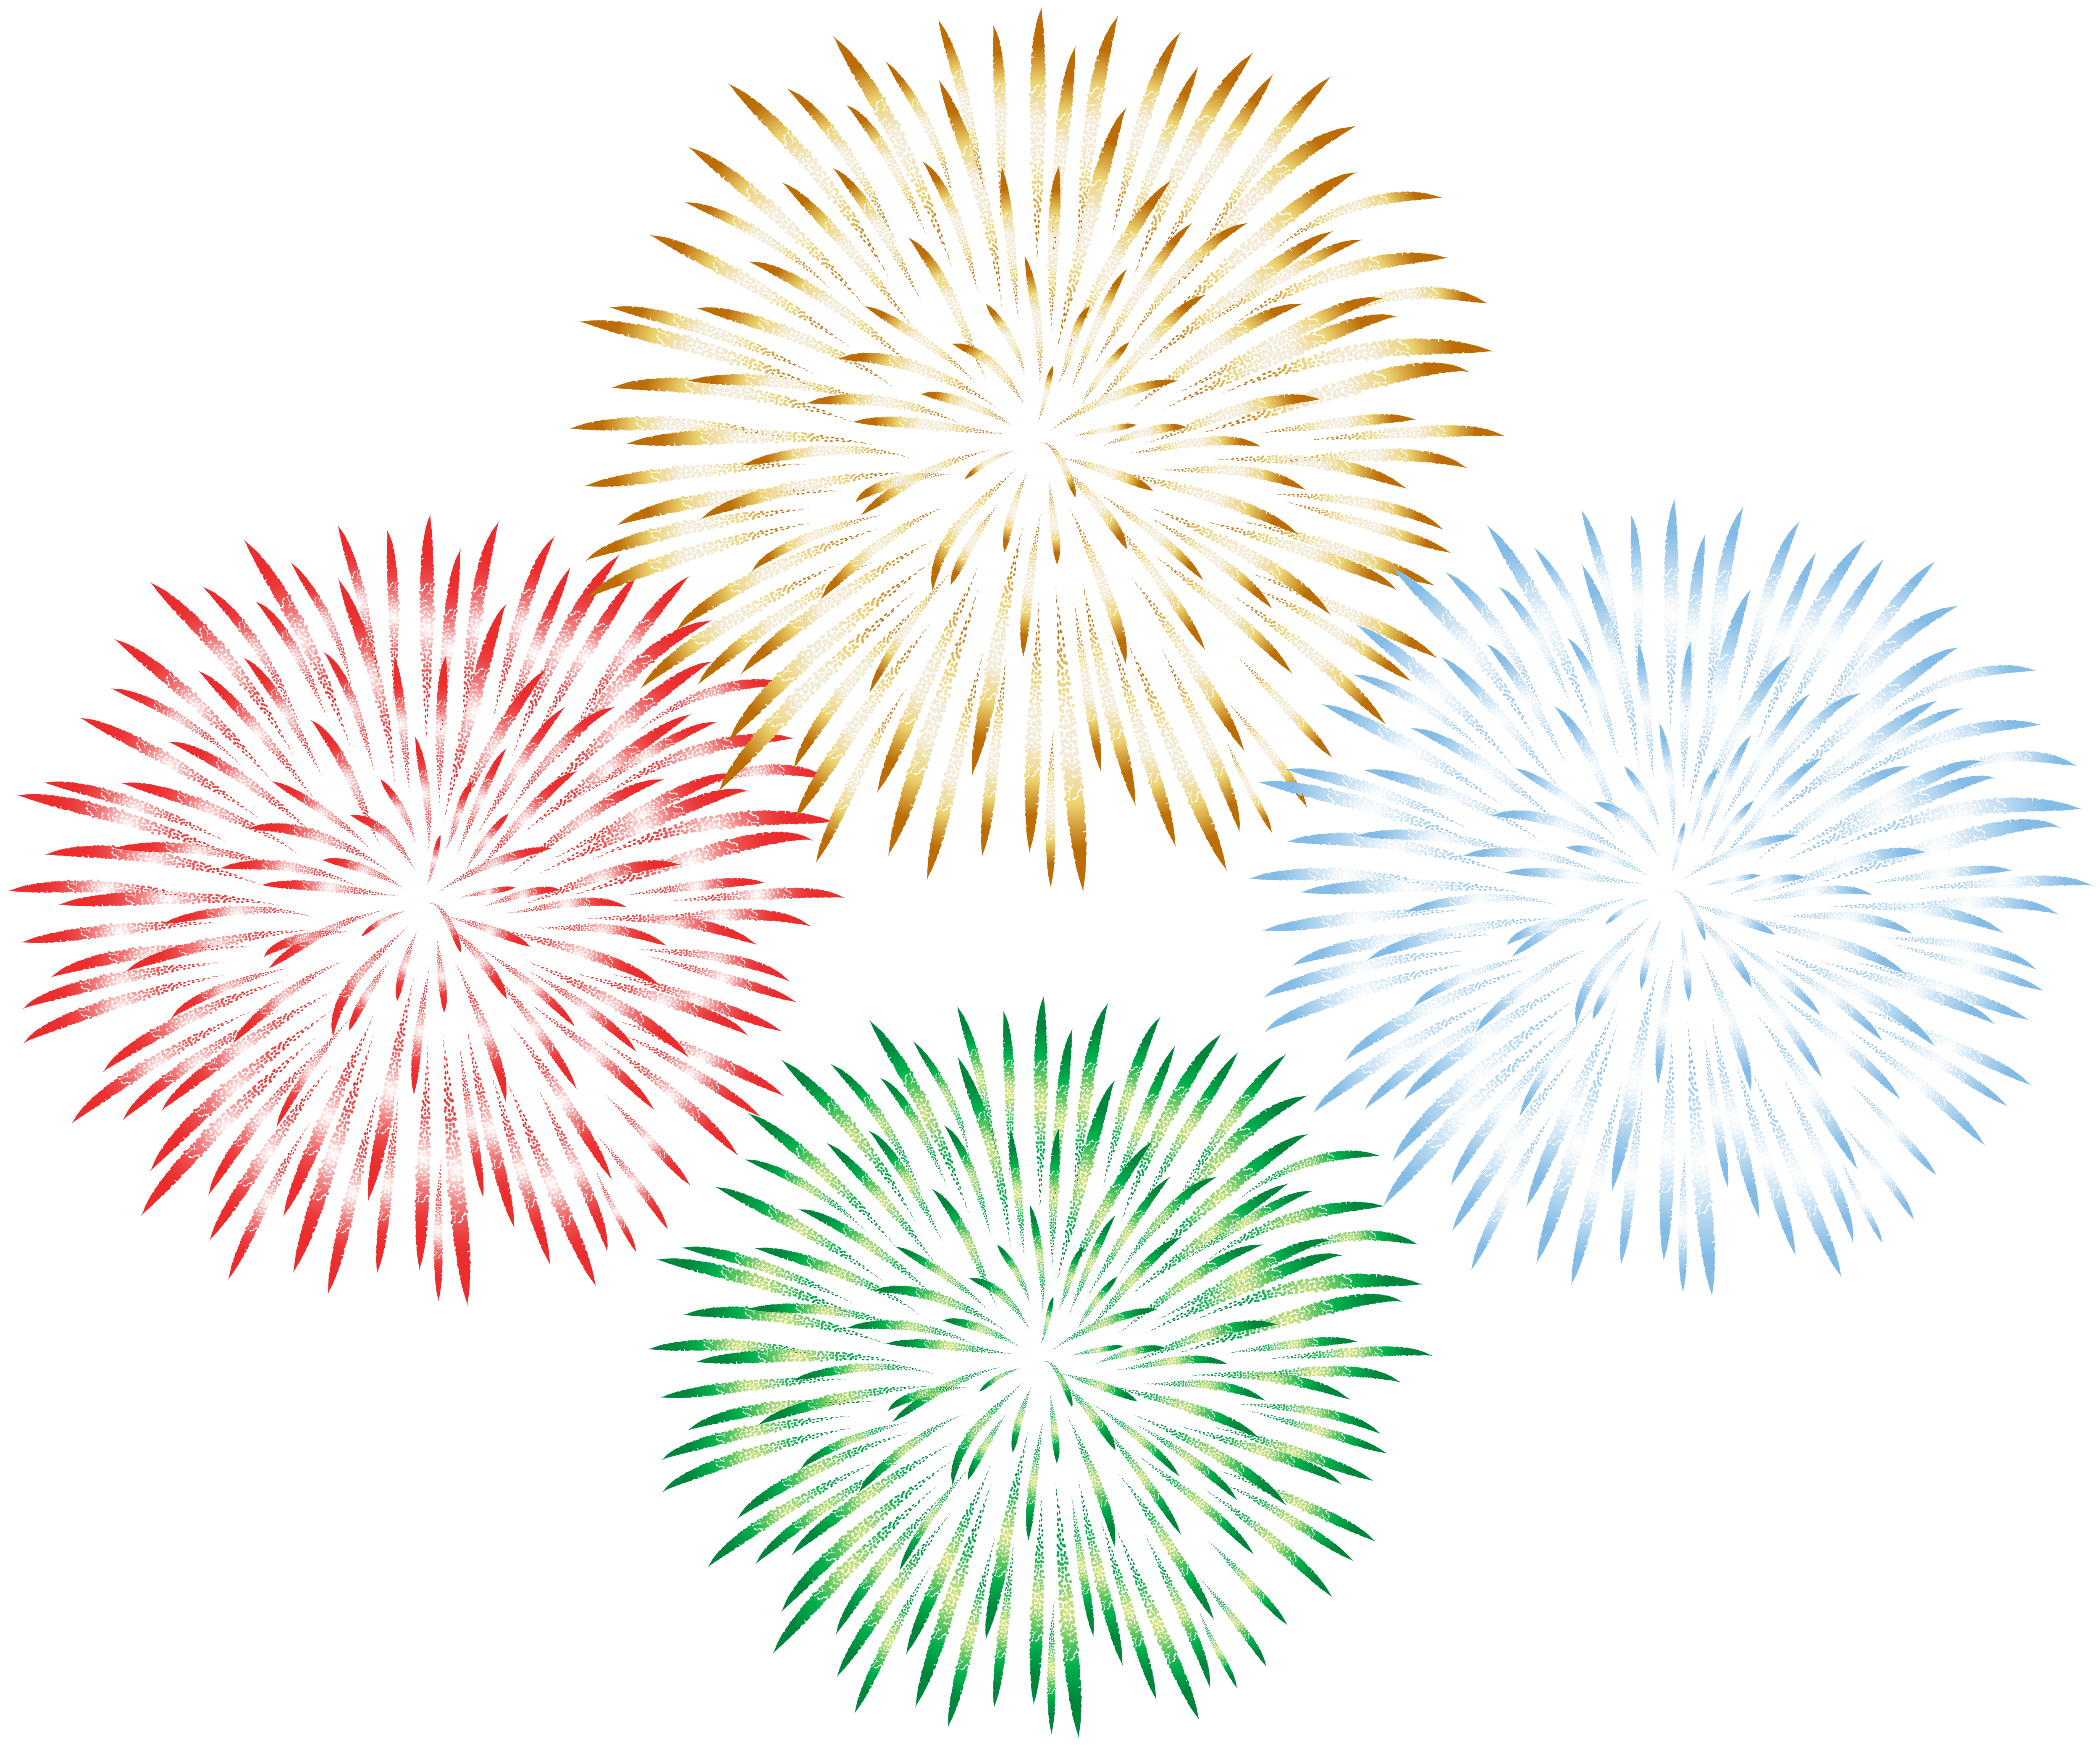 Fireworks transparency clipart clip black and white download Fireworks Transparent Clip Art Image | Gallery Yopriceville - High ... clip black and white download